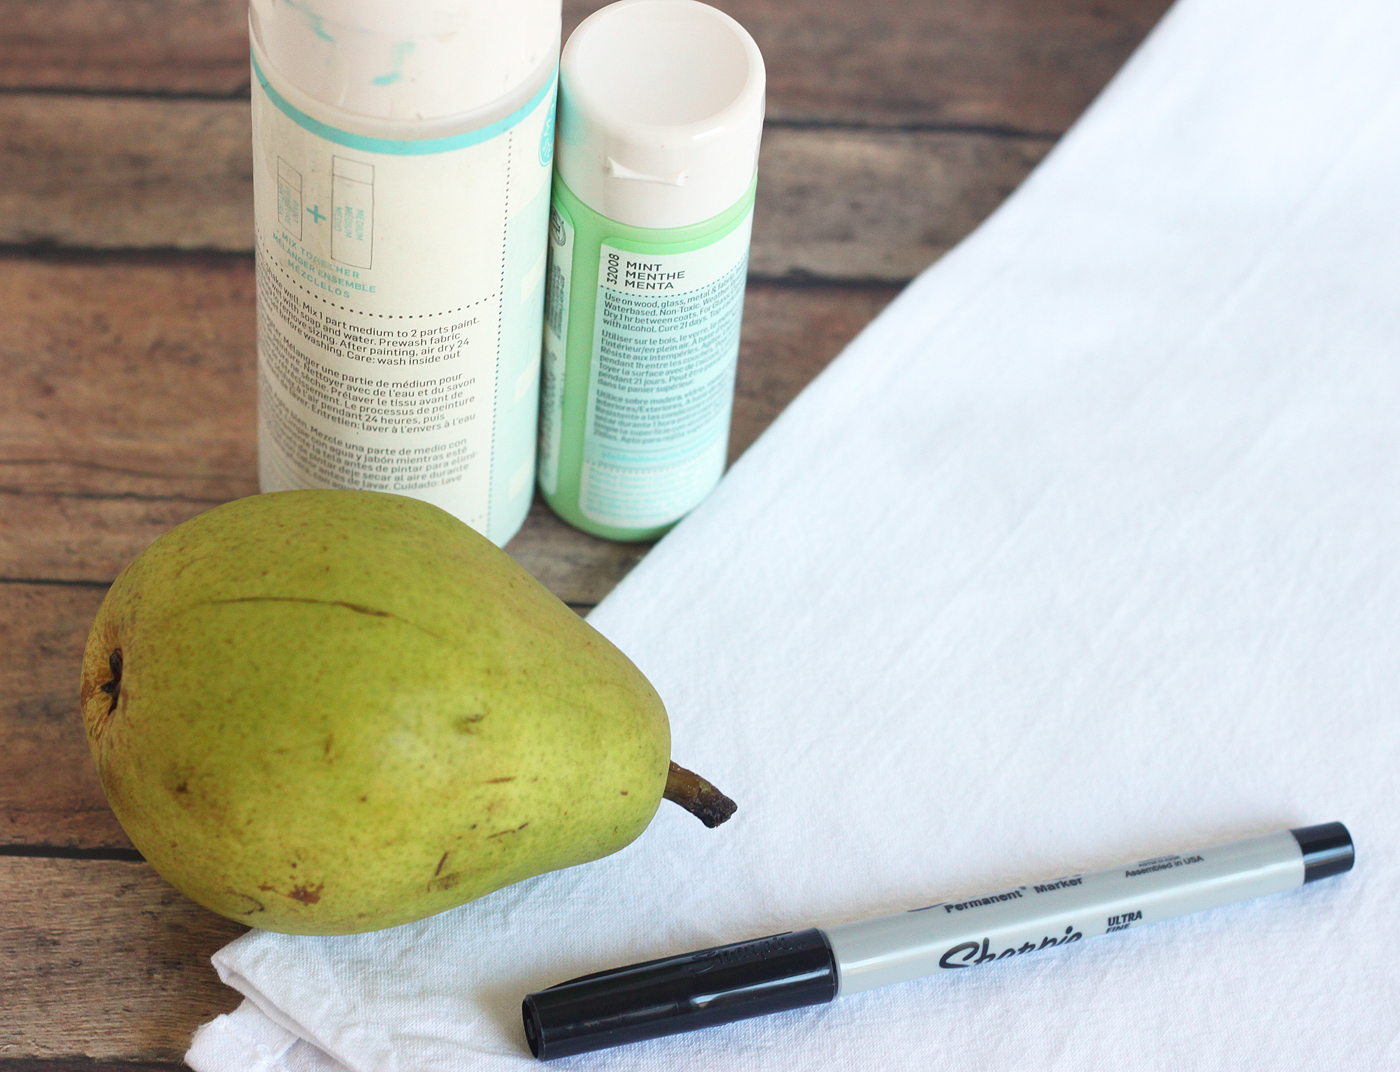 Supplies for fruit stamping